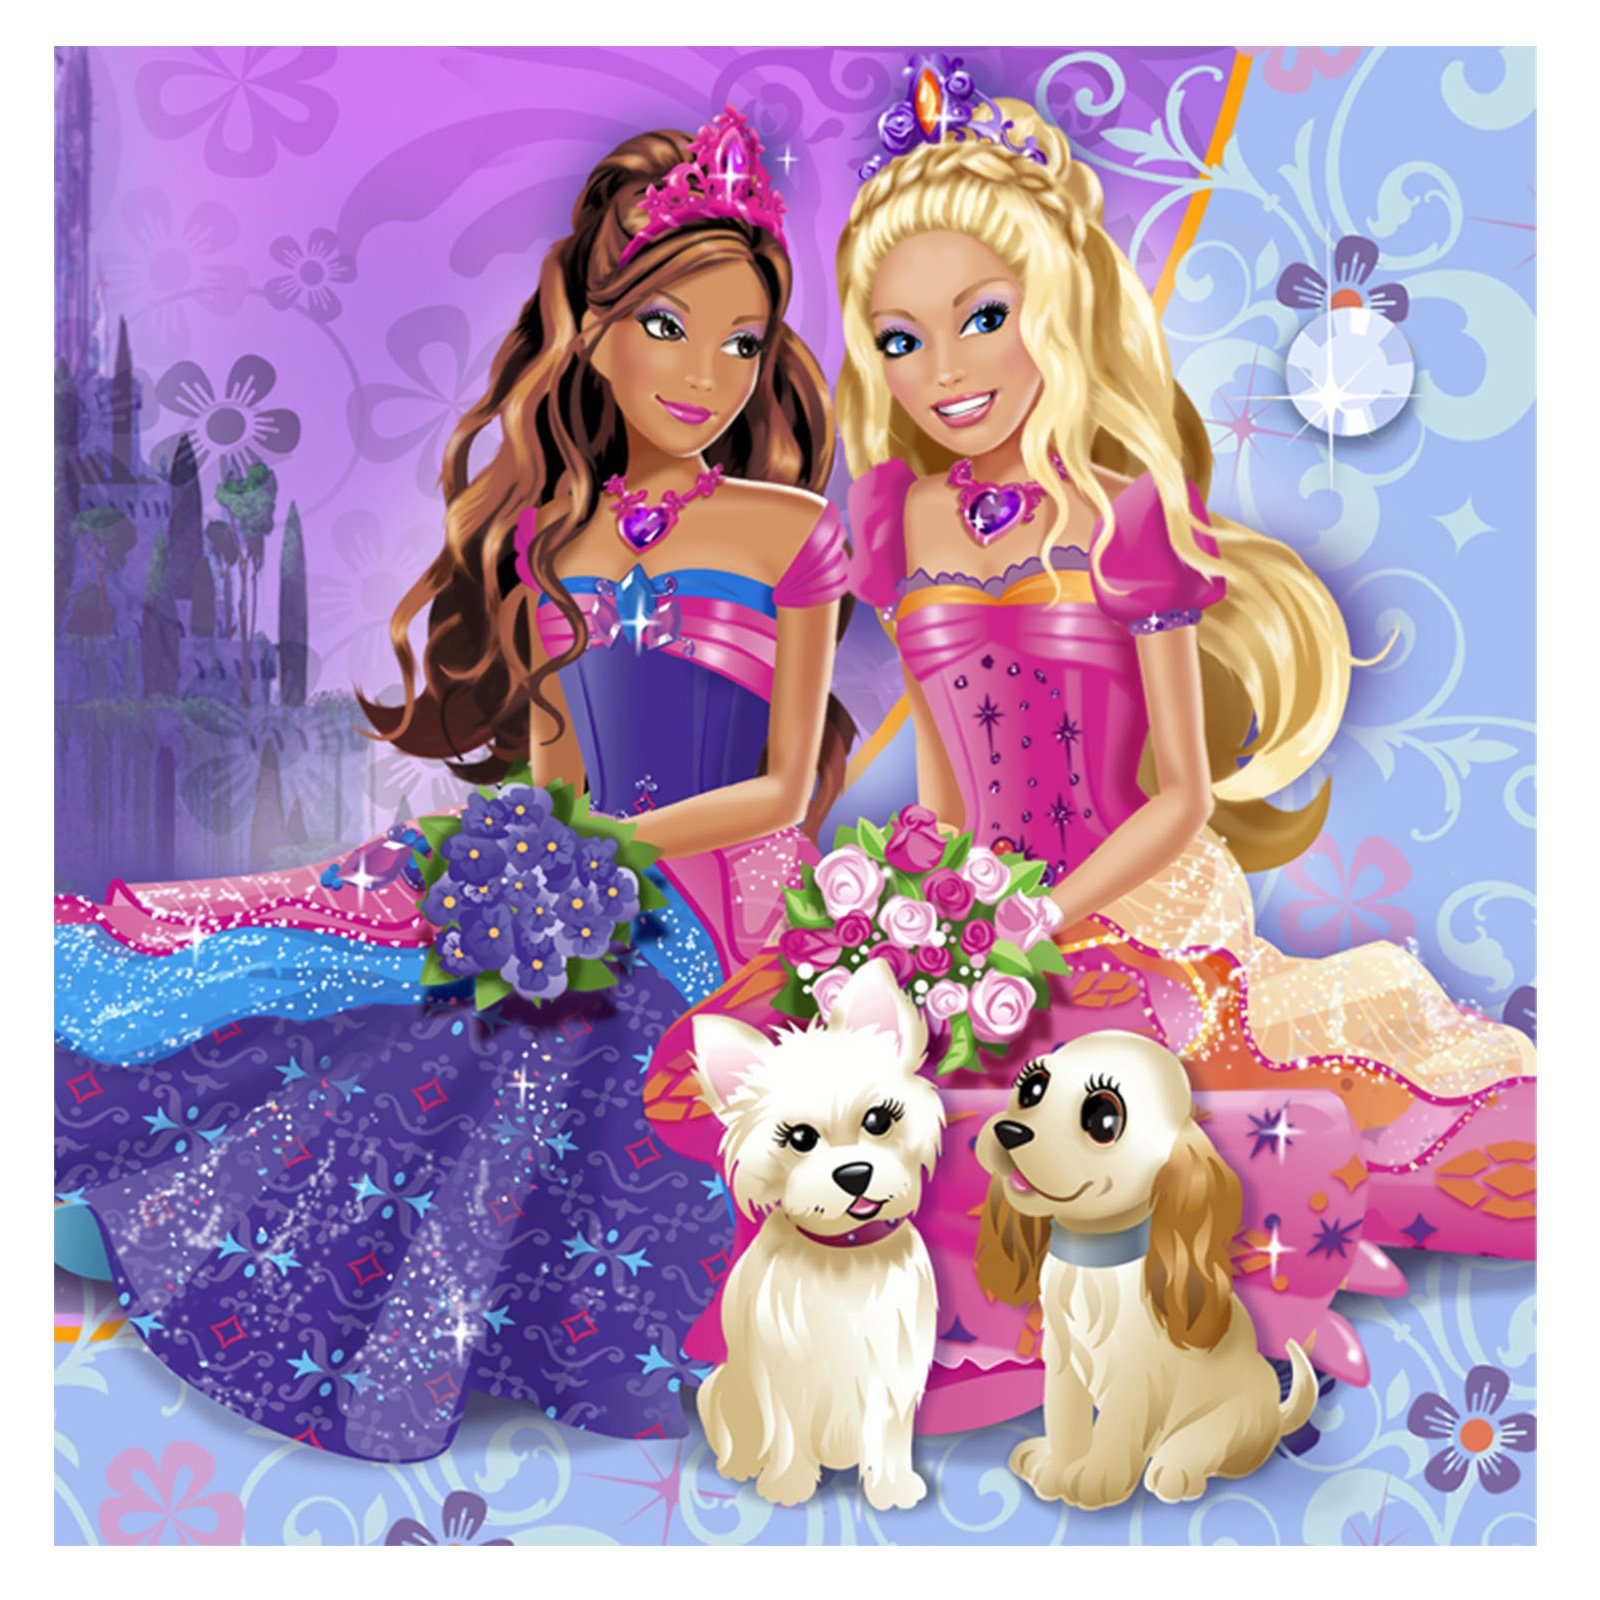 Magazines Time Barbie Wallpapers Barbie Princess Wallpaper Barbie